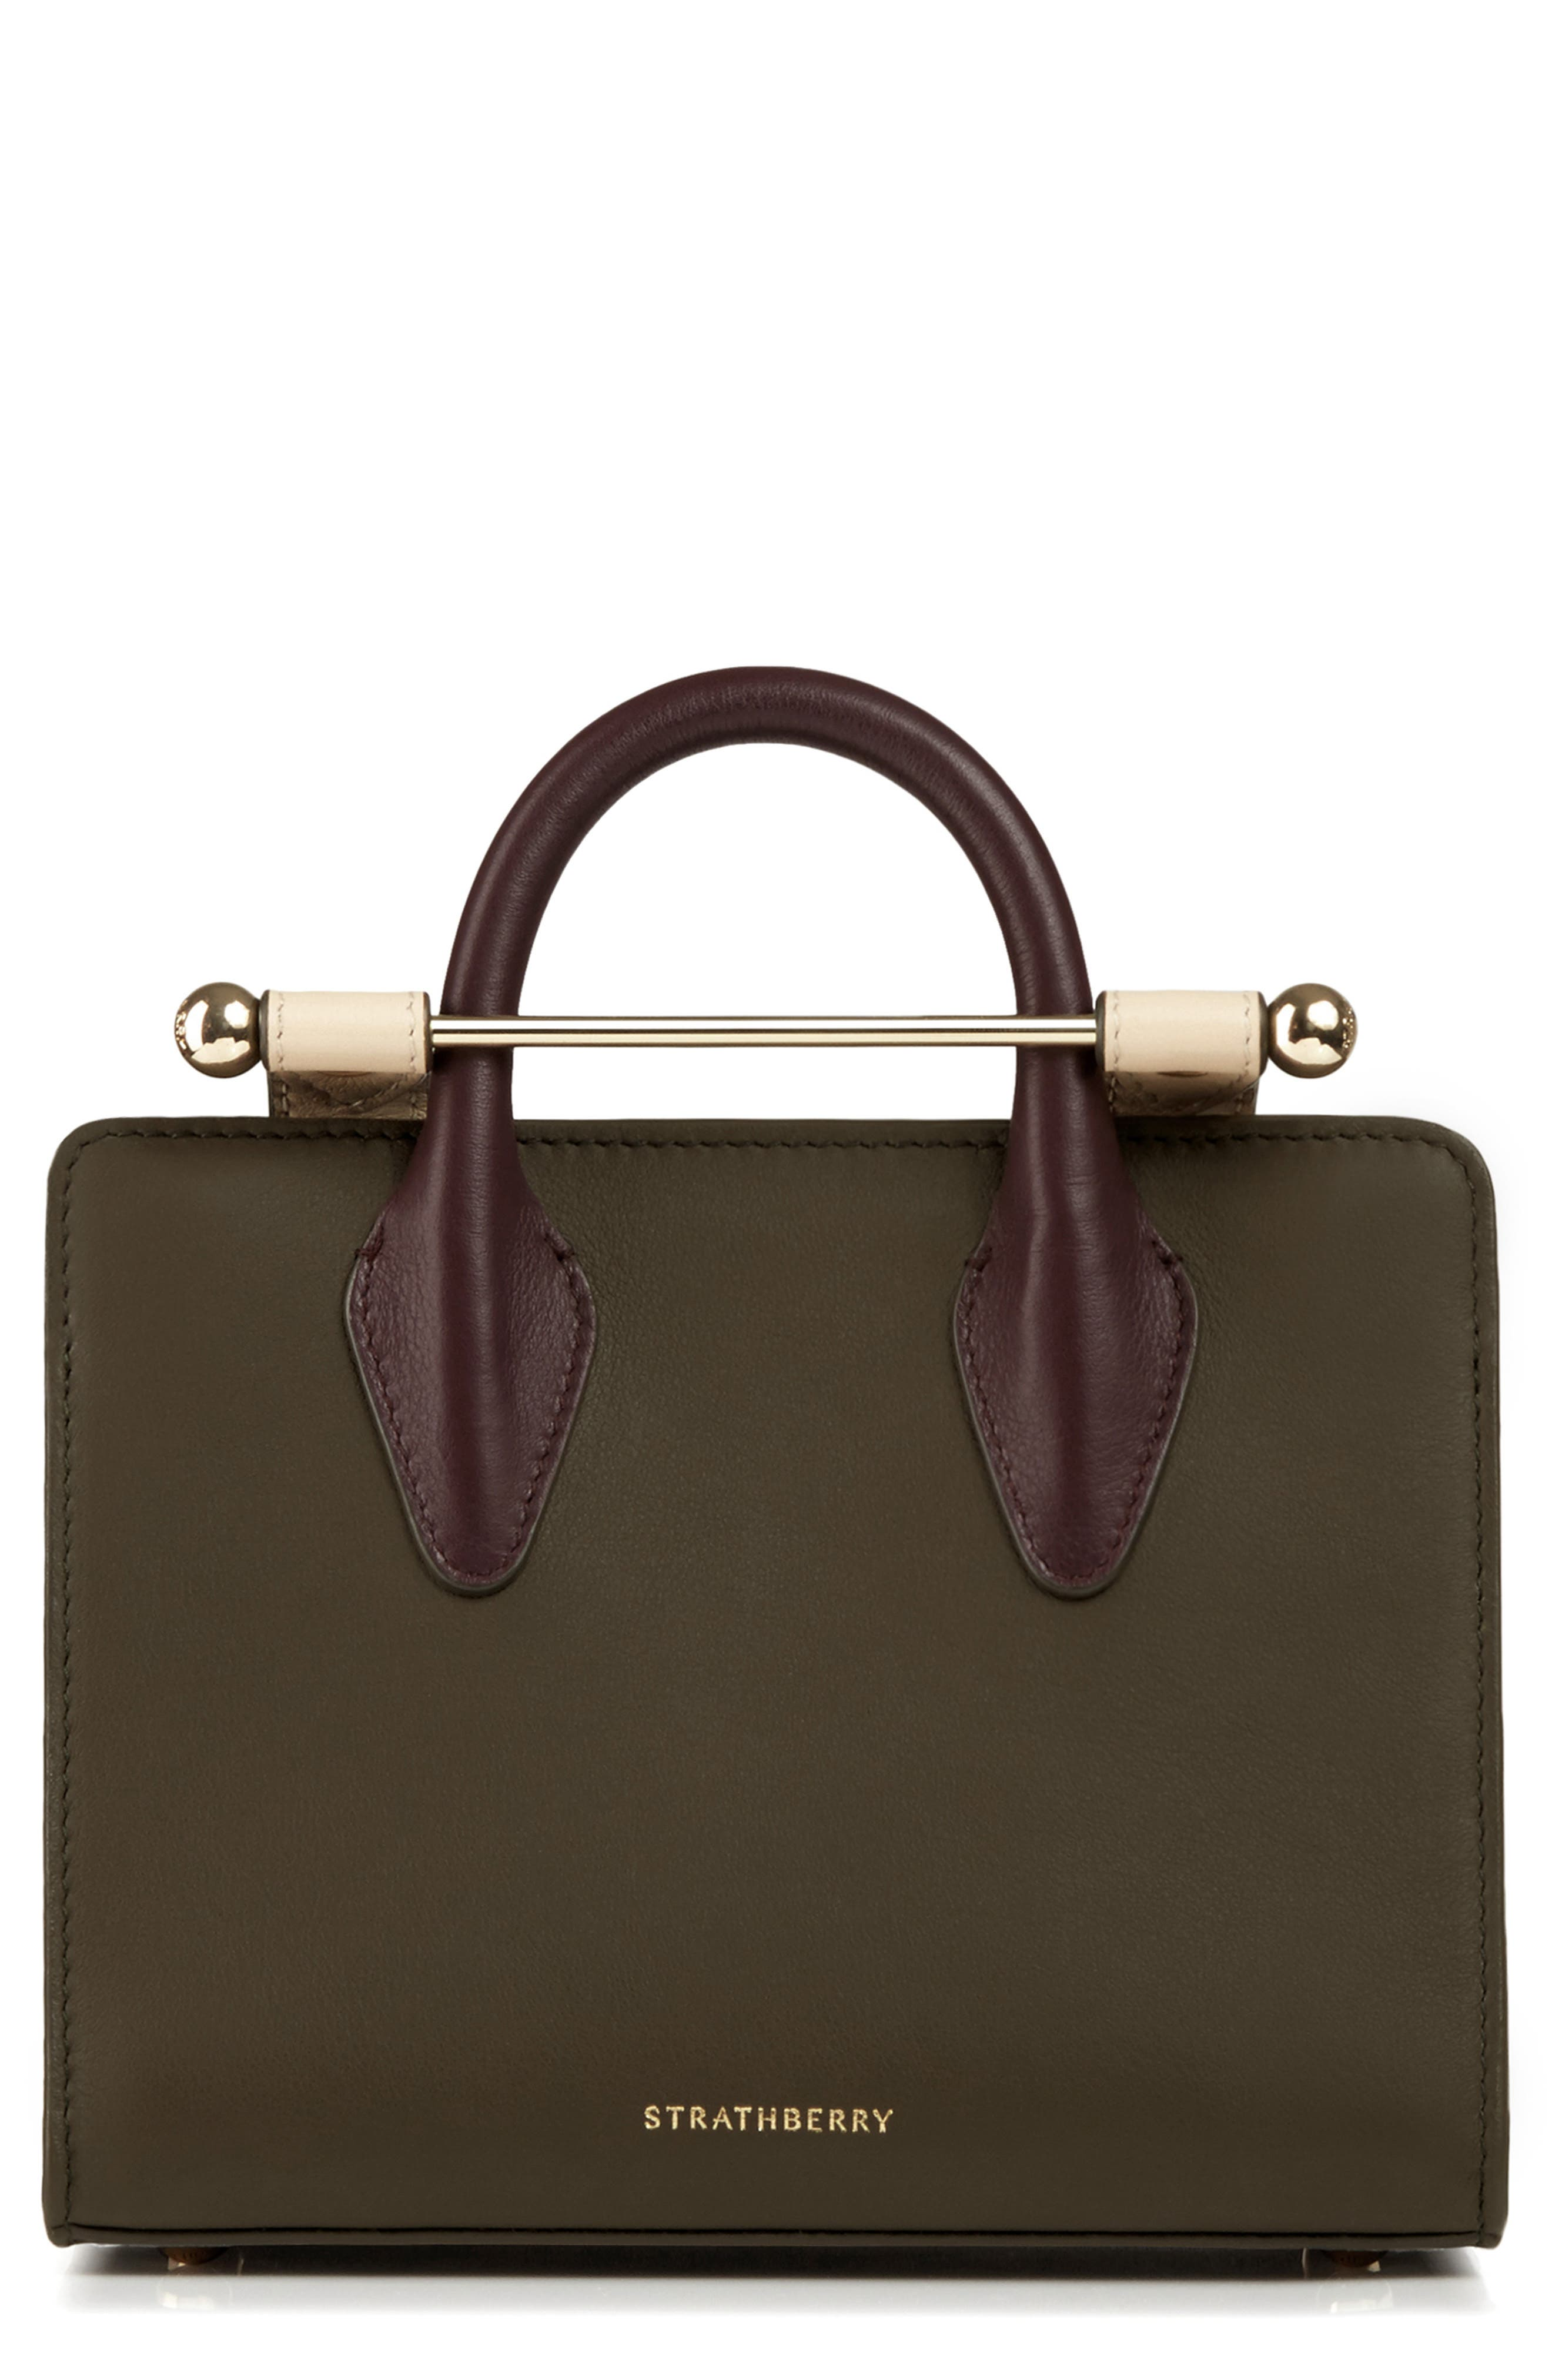 STRATHBERRY, Nano Tricolor Leather Satchel, Main thumbnail 1, color, FOREST/ SAND/ BURGUNDY